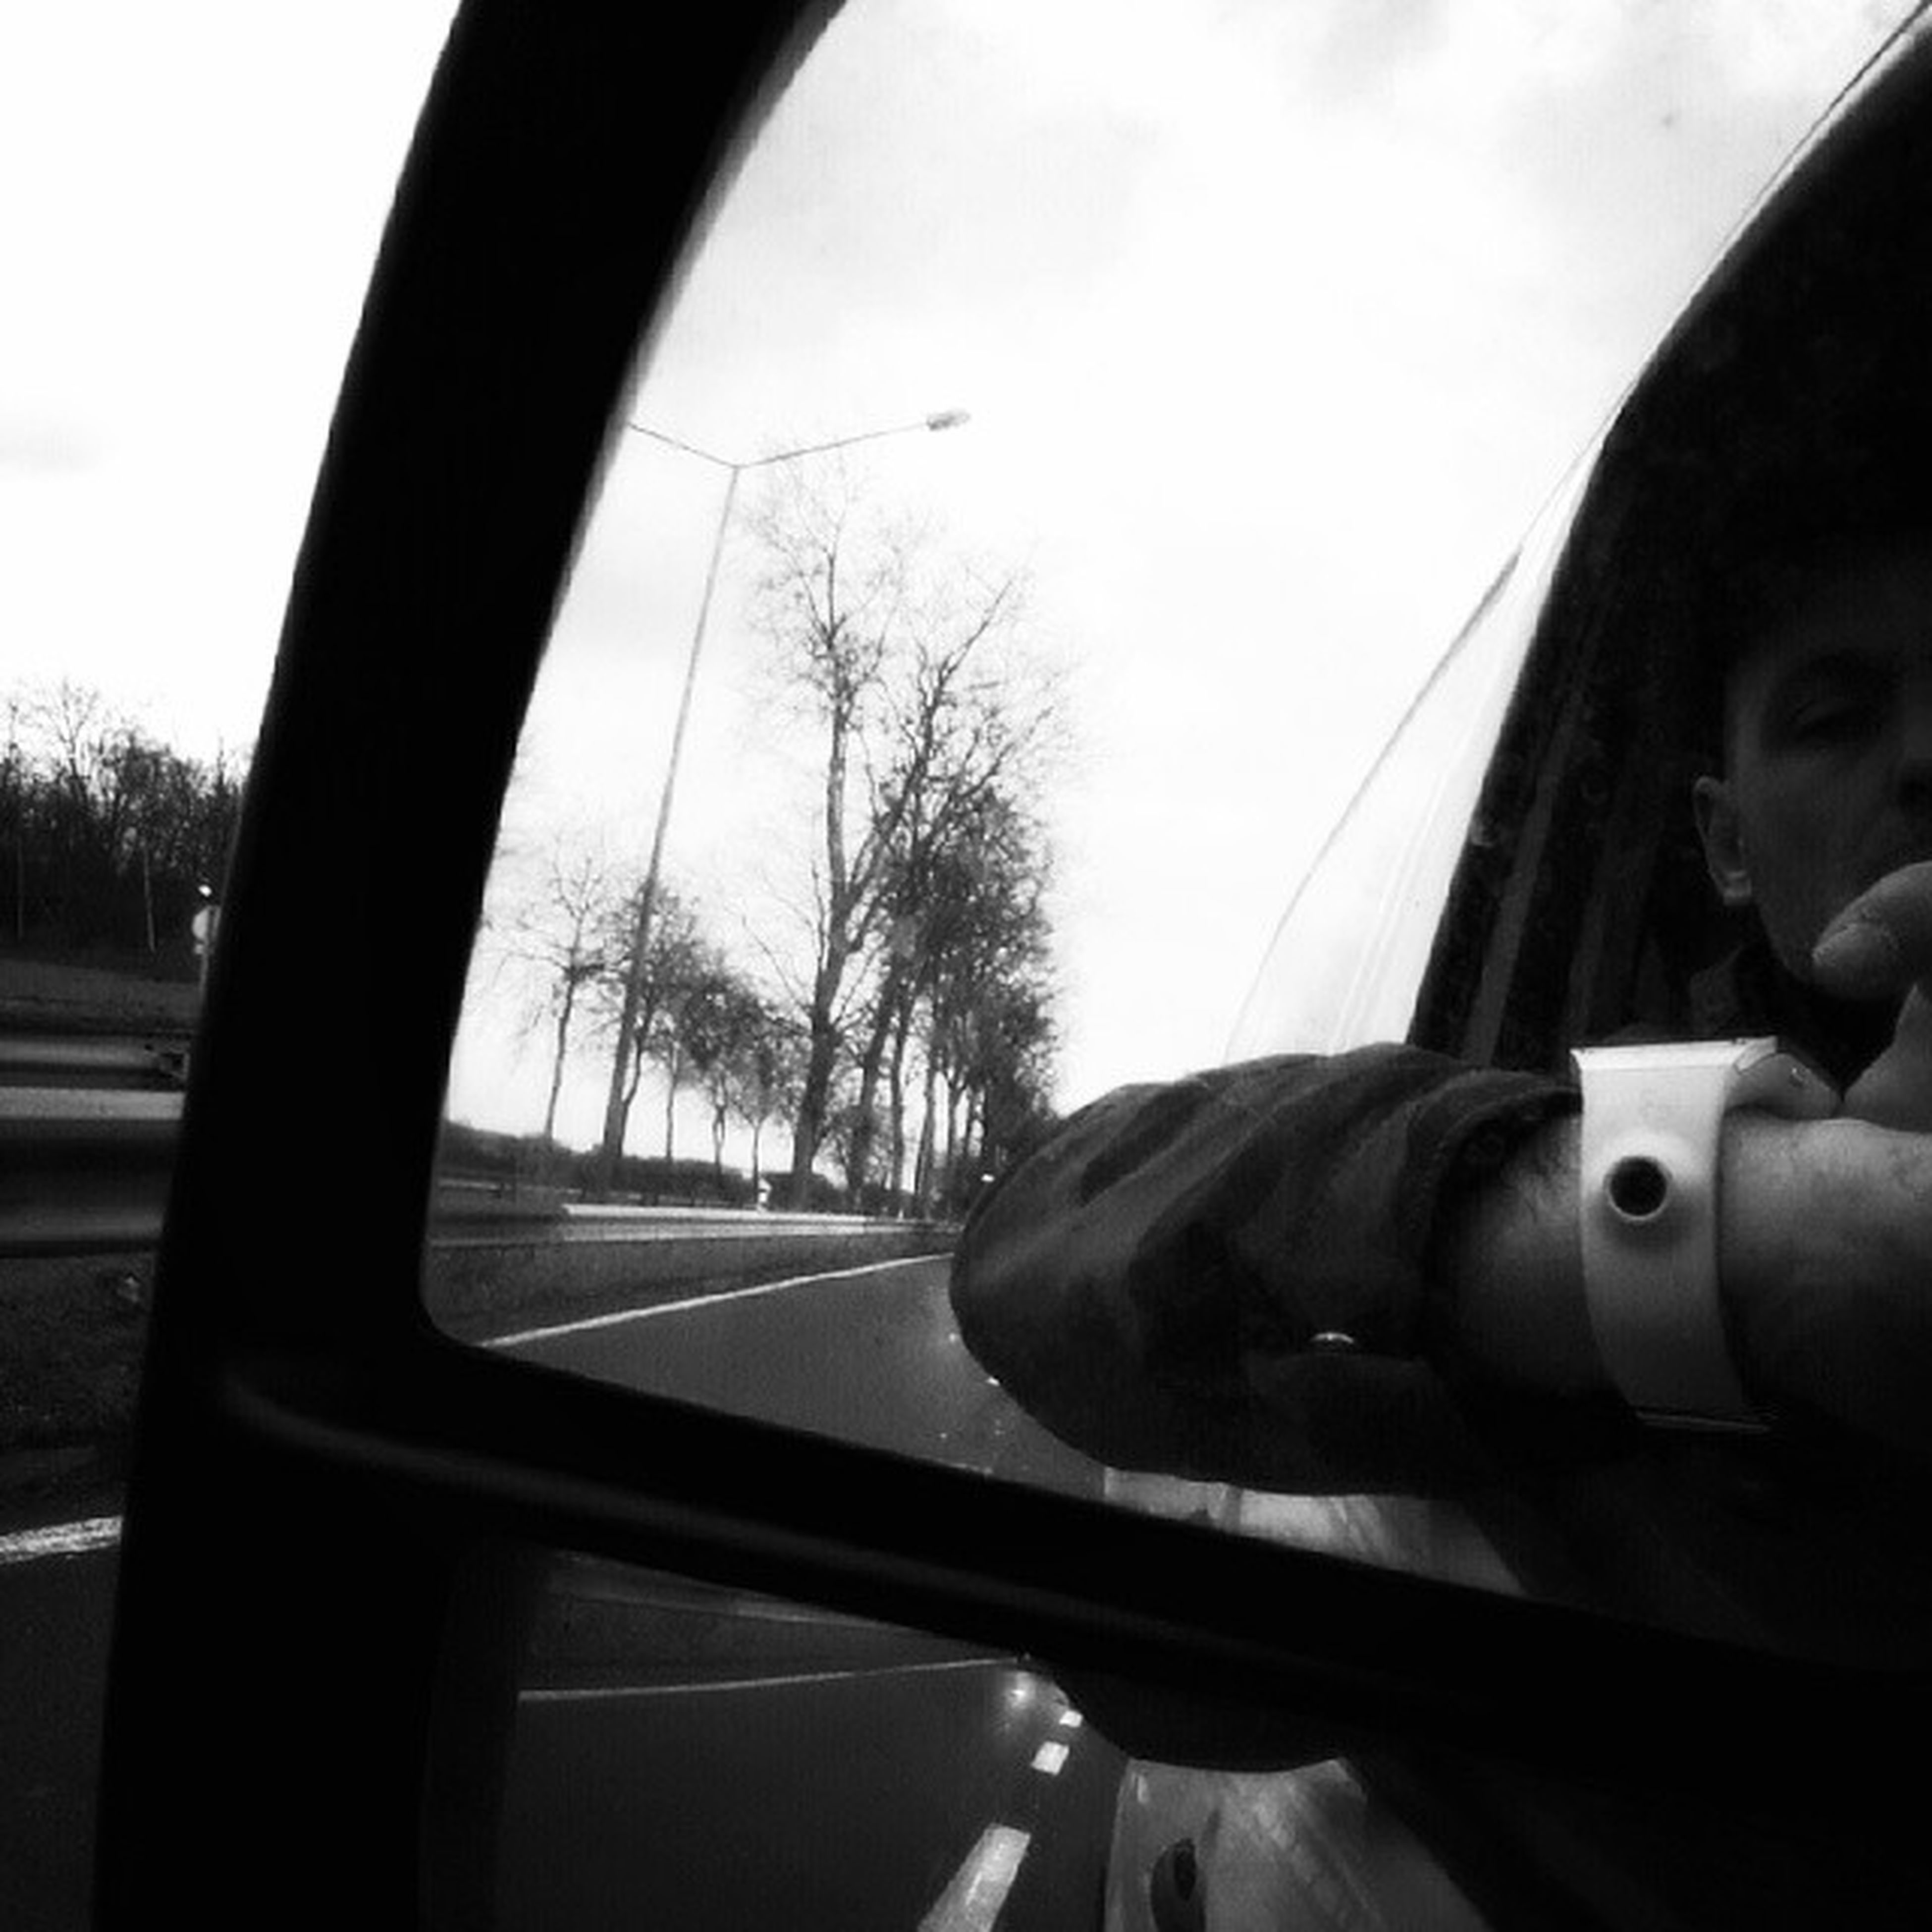 transportation, mode of transport, vehicle interior, car, land vehicle, car interior, glass - material, travel, transparent, windshield, side-view mirror, sky, window, part of, journey, tree, public transportation, cropped